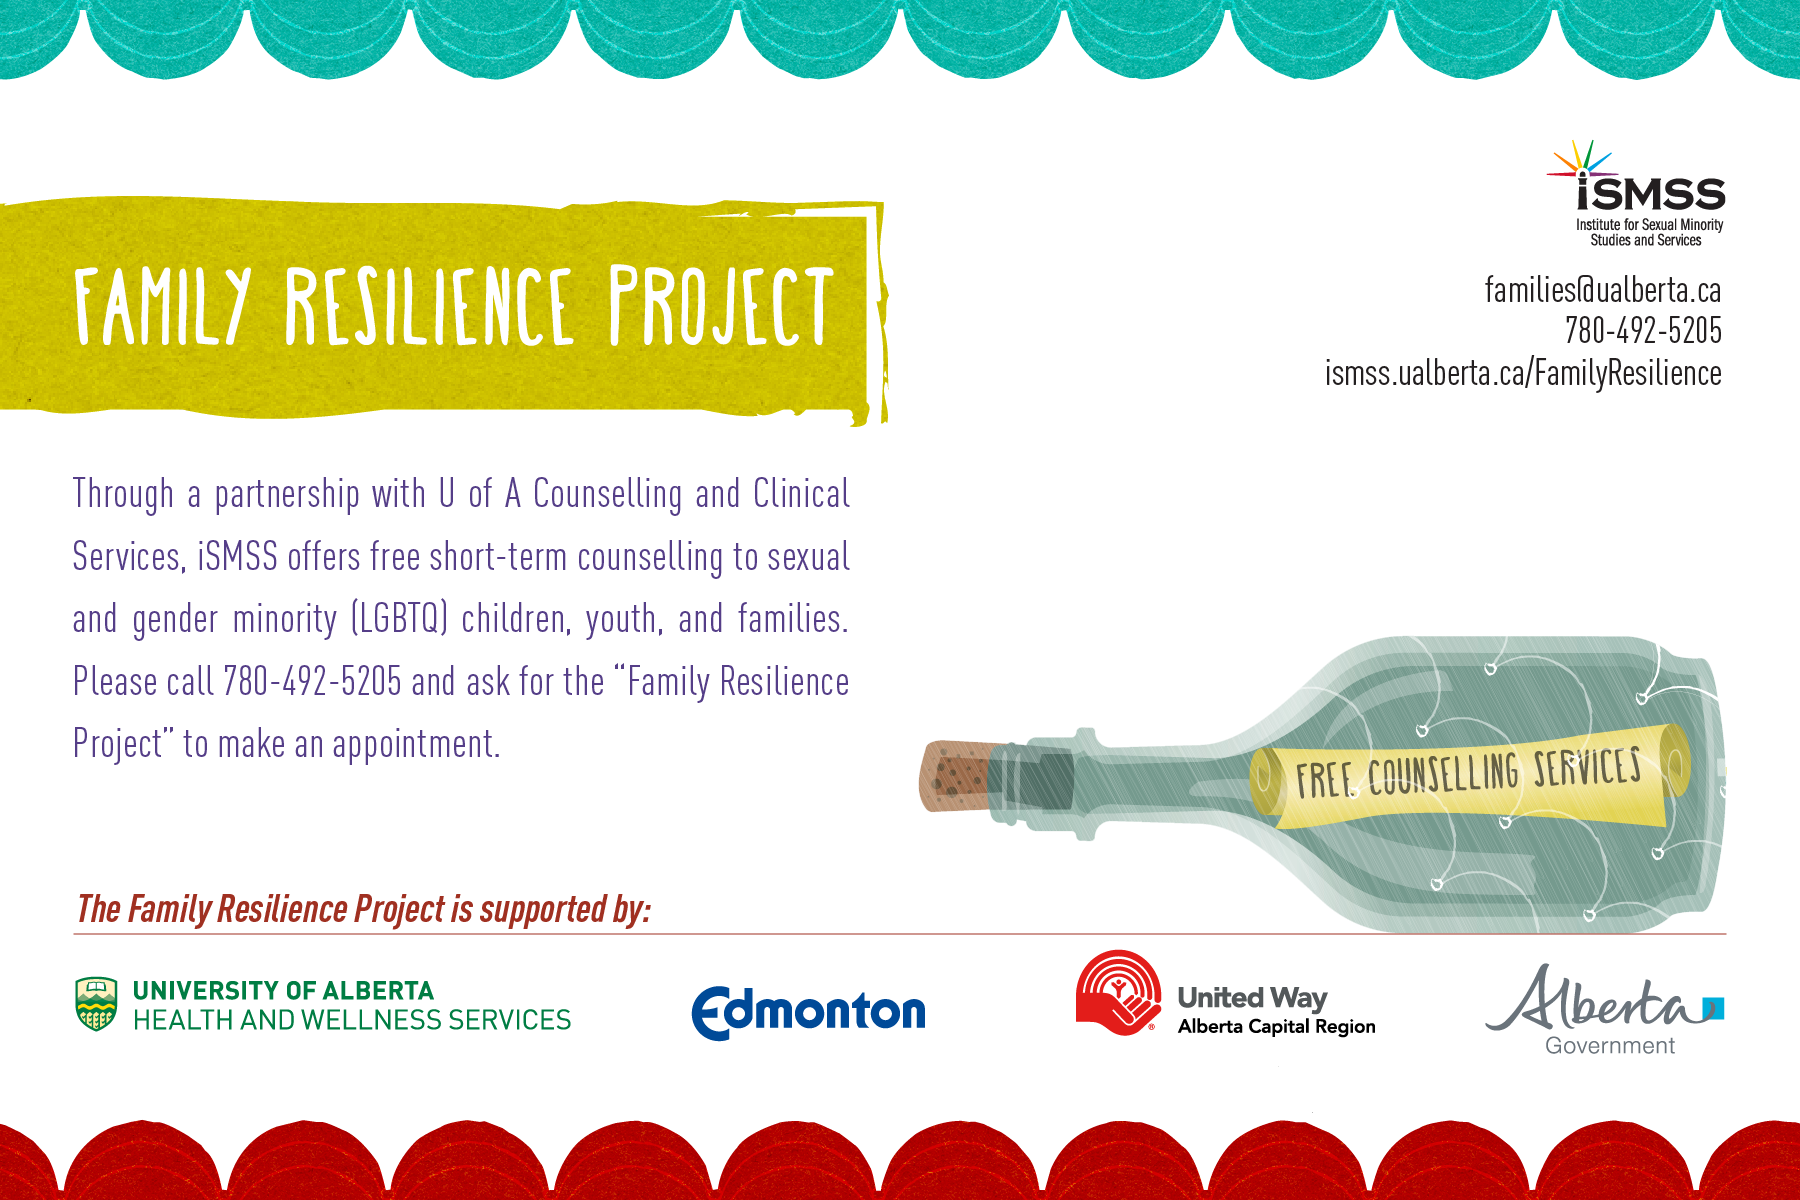 FamilyResilienceProject_Postcard_6x4_16-09-30-02.png